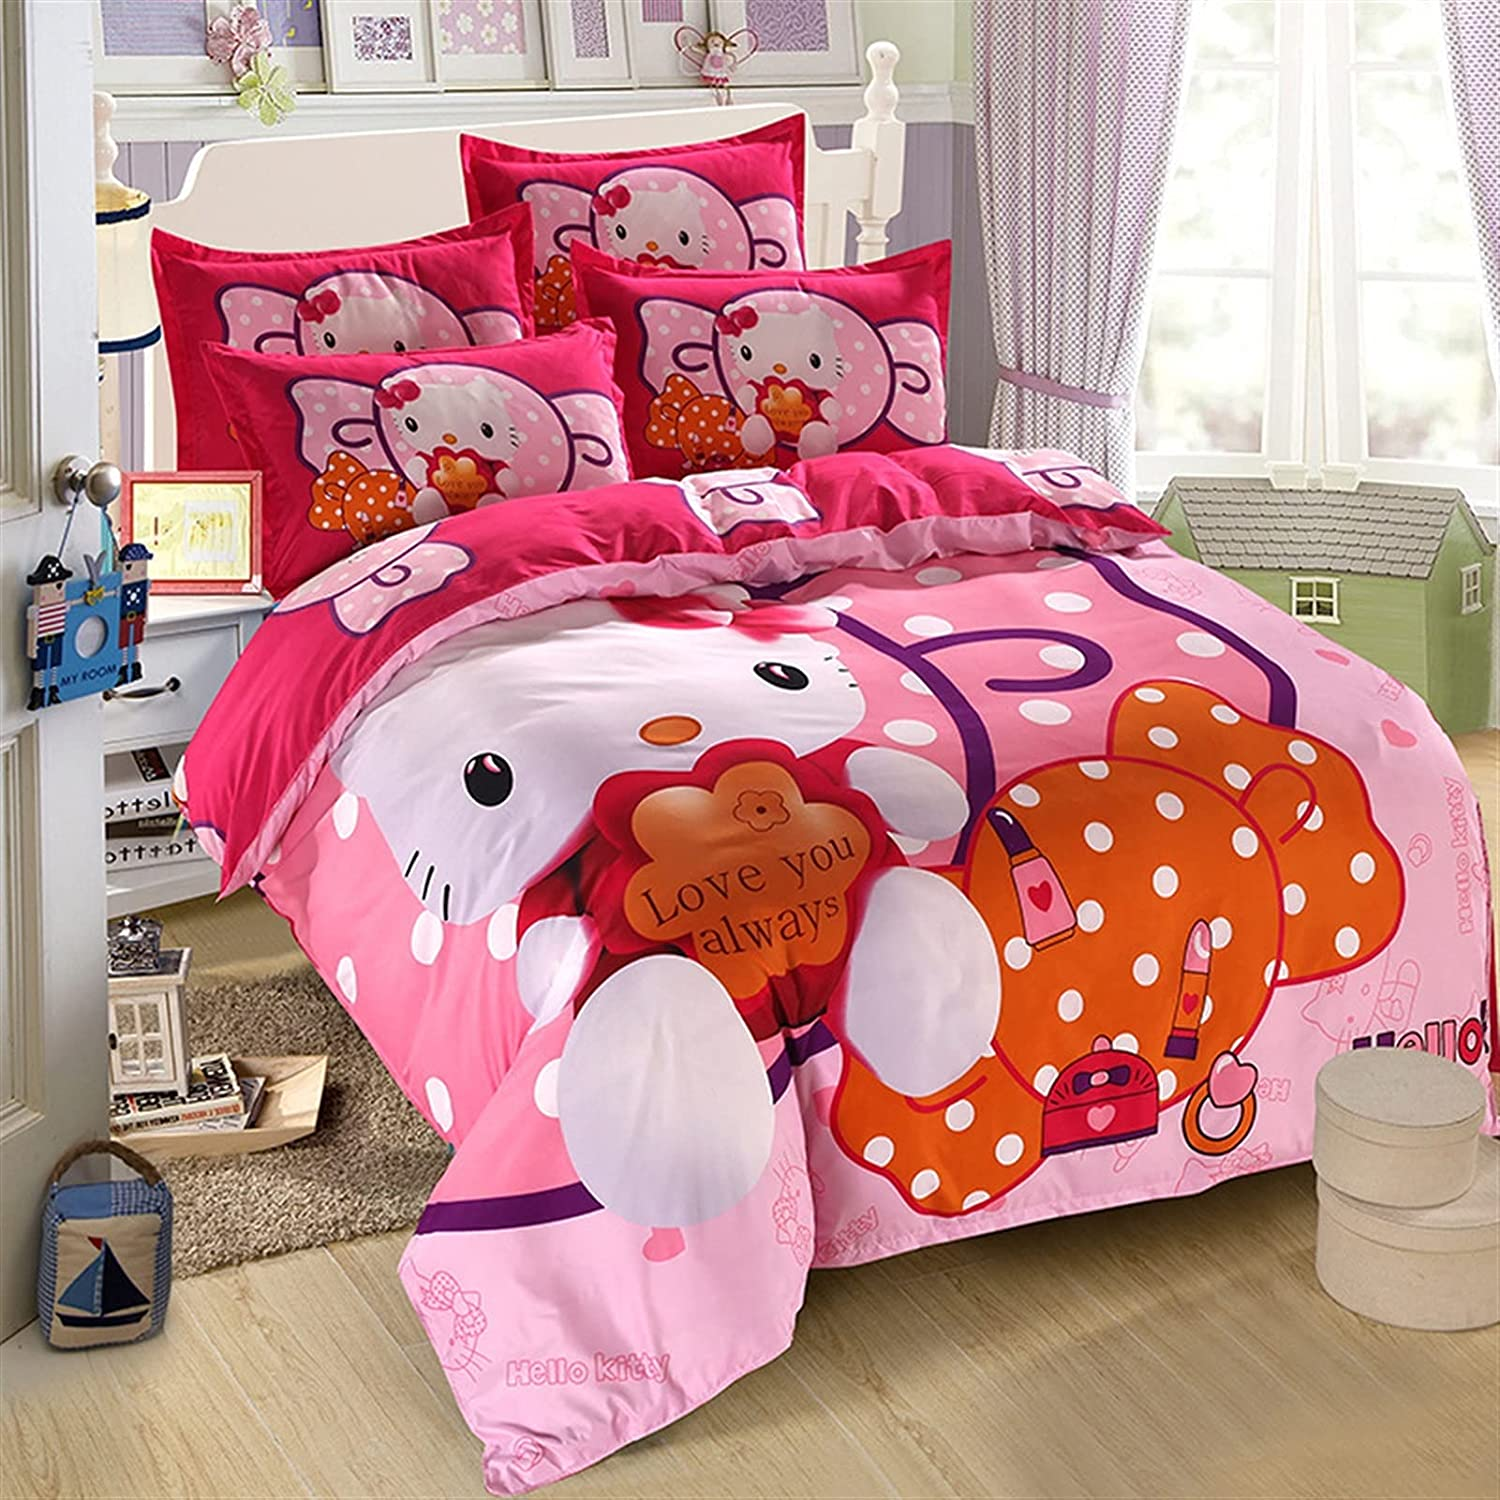 LIskybird Excellent Cartoon Mickey Over item handling Mouse Bed Single Set Four Princess